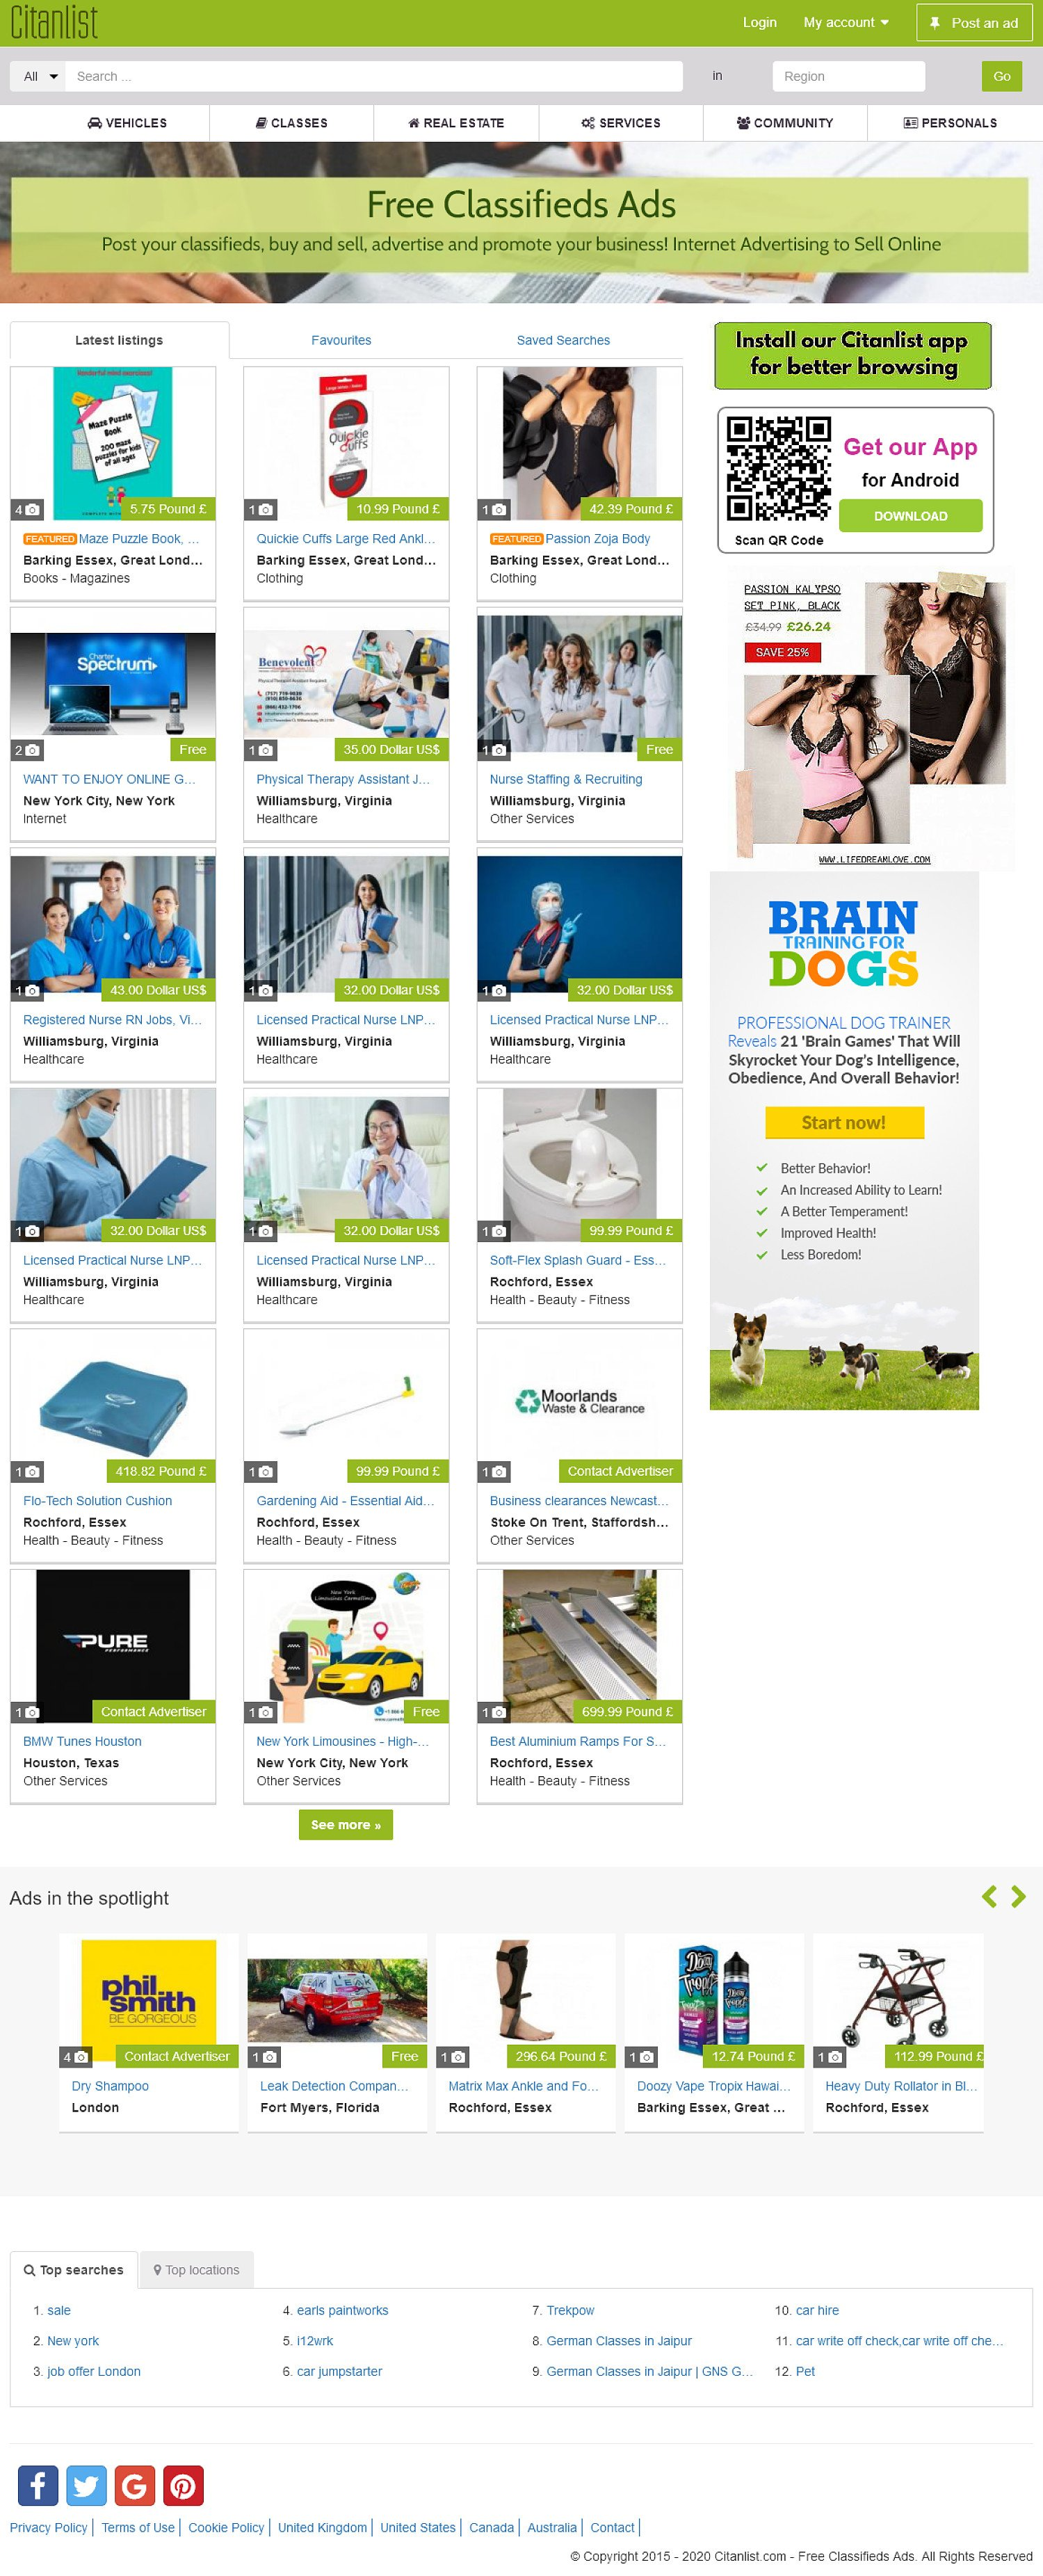 Buy, sell and discover amazing deals now on the Citanlist Marketplace wherever you are.